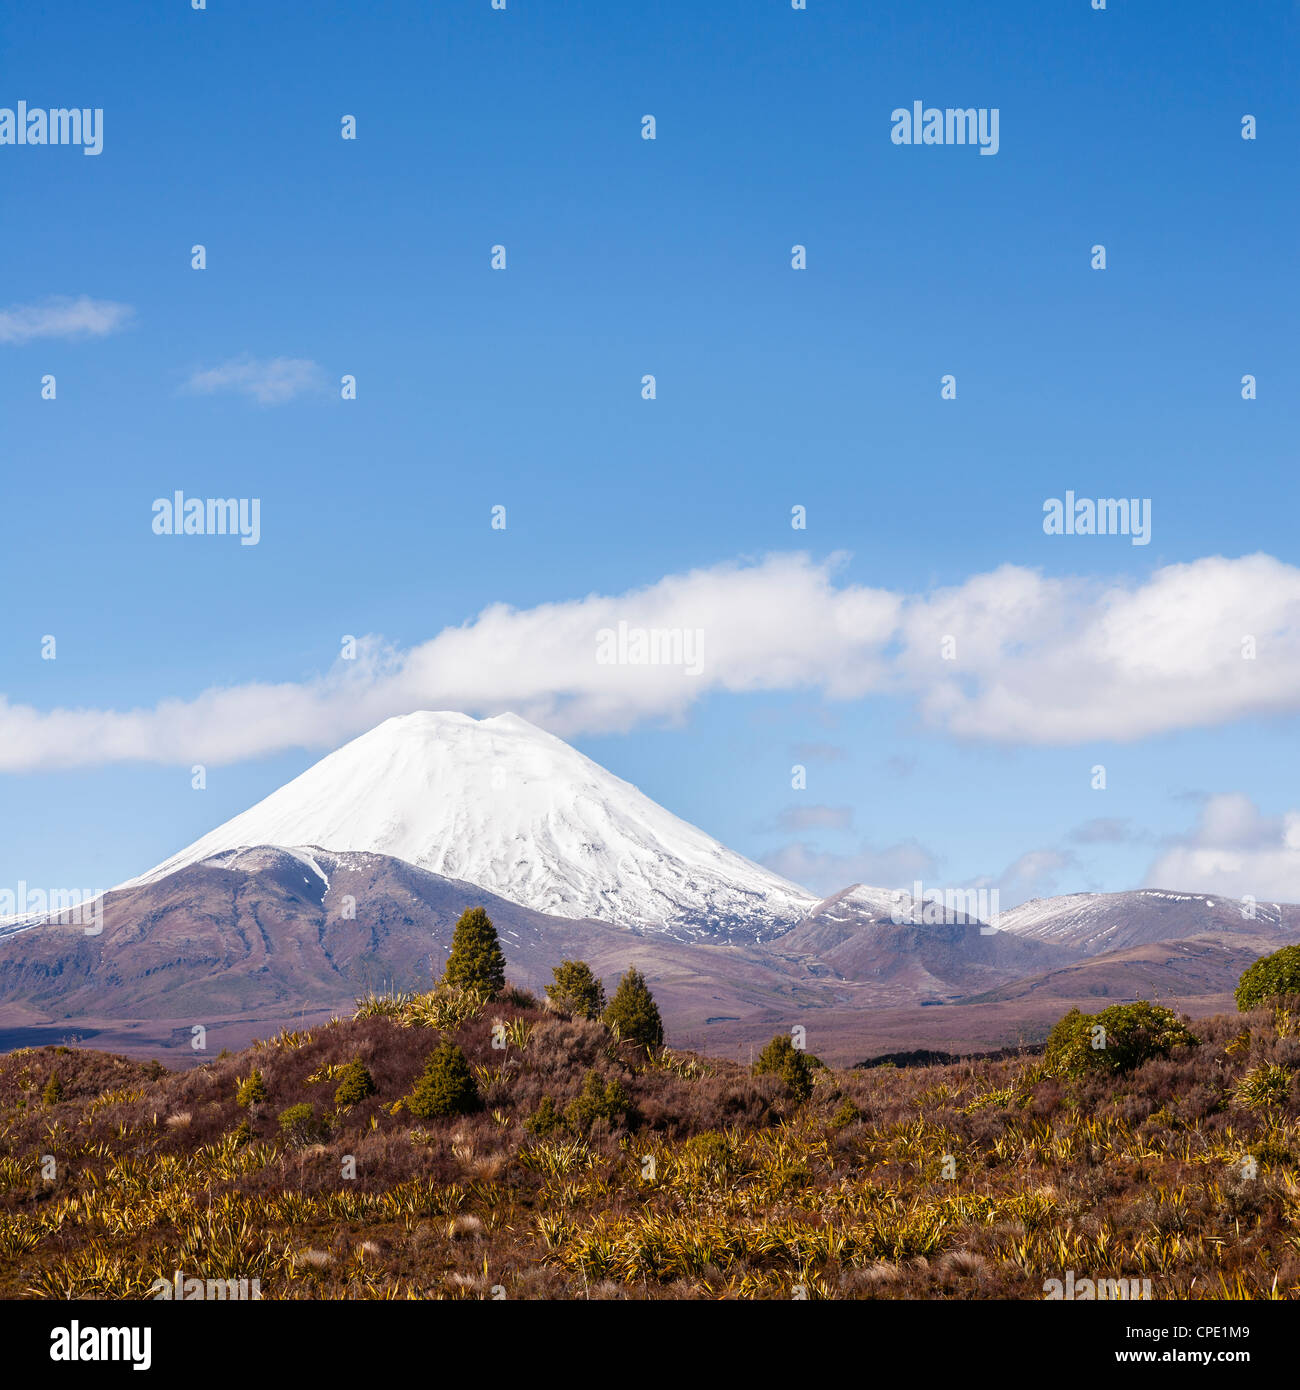 Mount Ngauruhoe seen from the west, in Tongariro National Park, New Zealand. - Stock Image